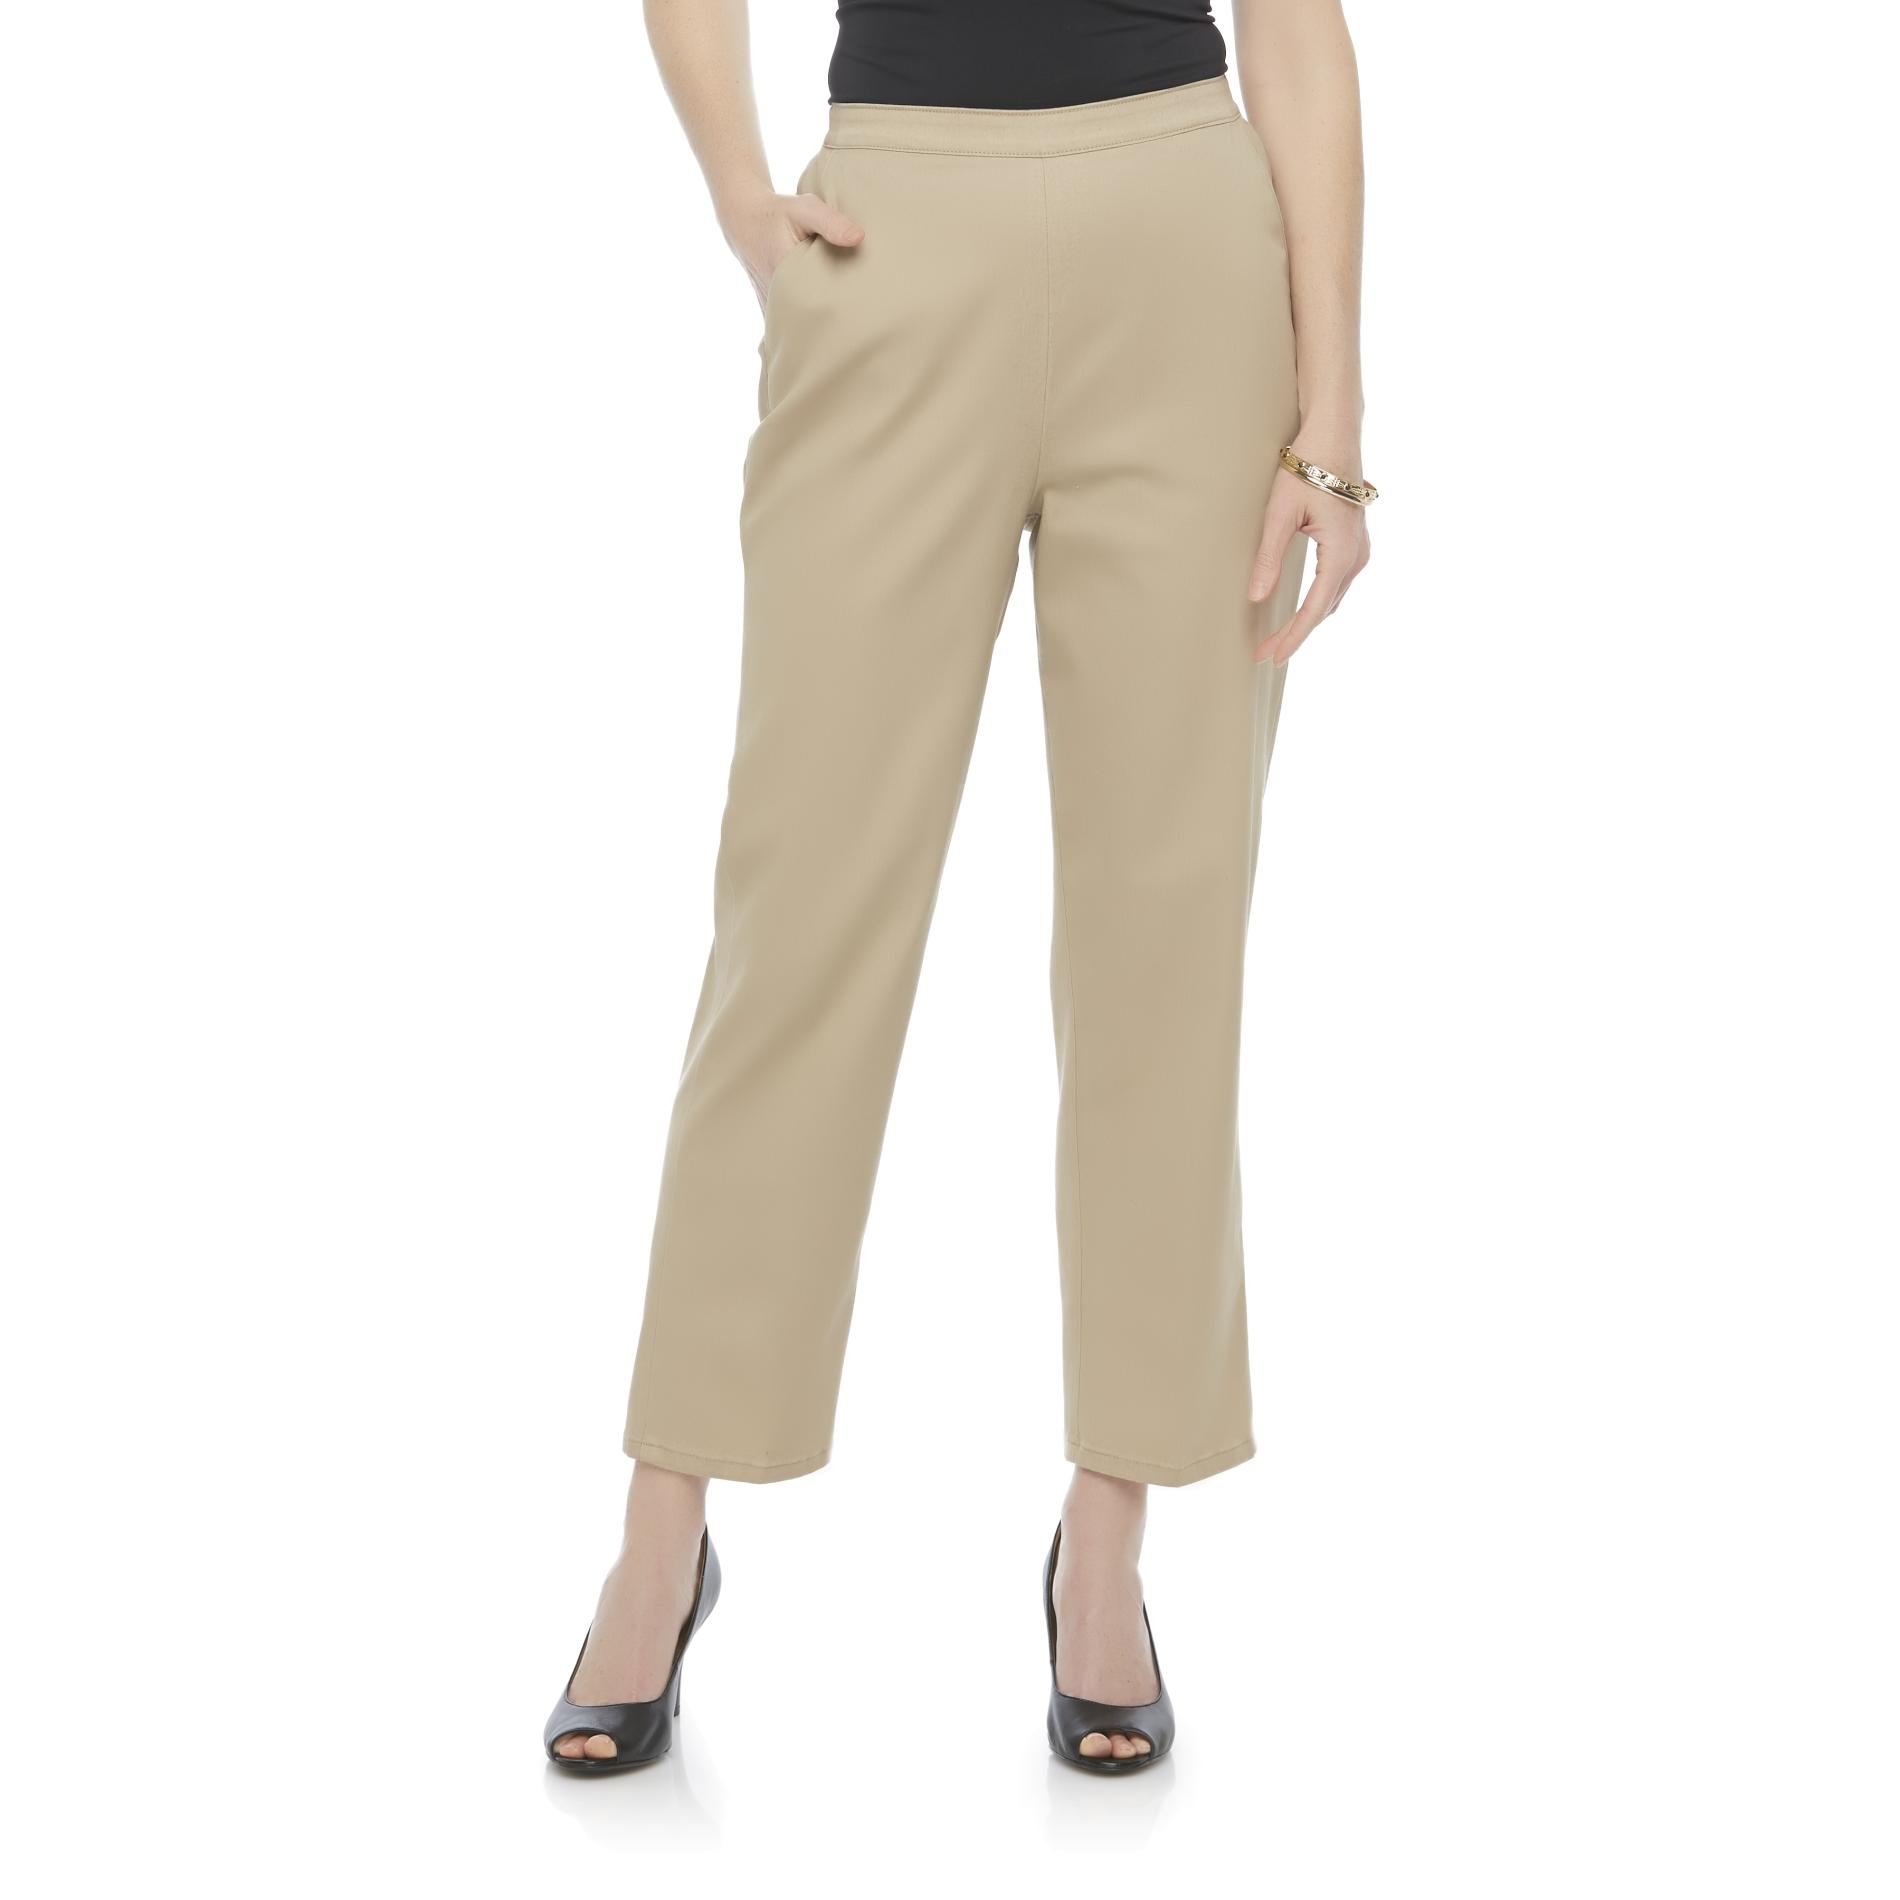 Laura Scott Women' Comfort Waist Cropped Khaki Pants